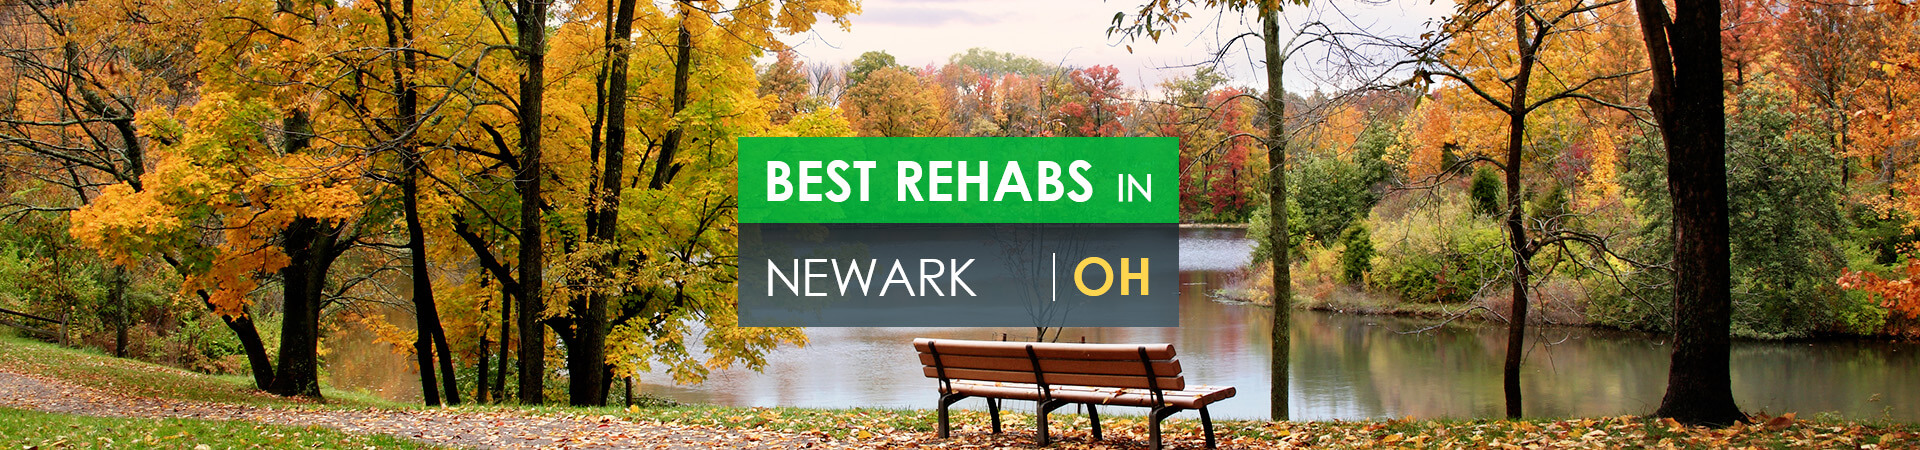 Best rehabs in Newark, OH